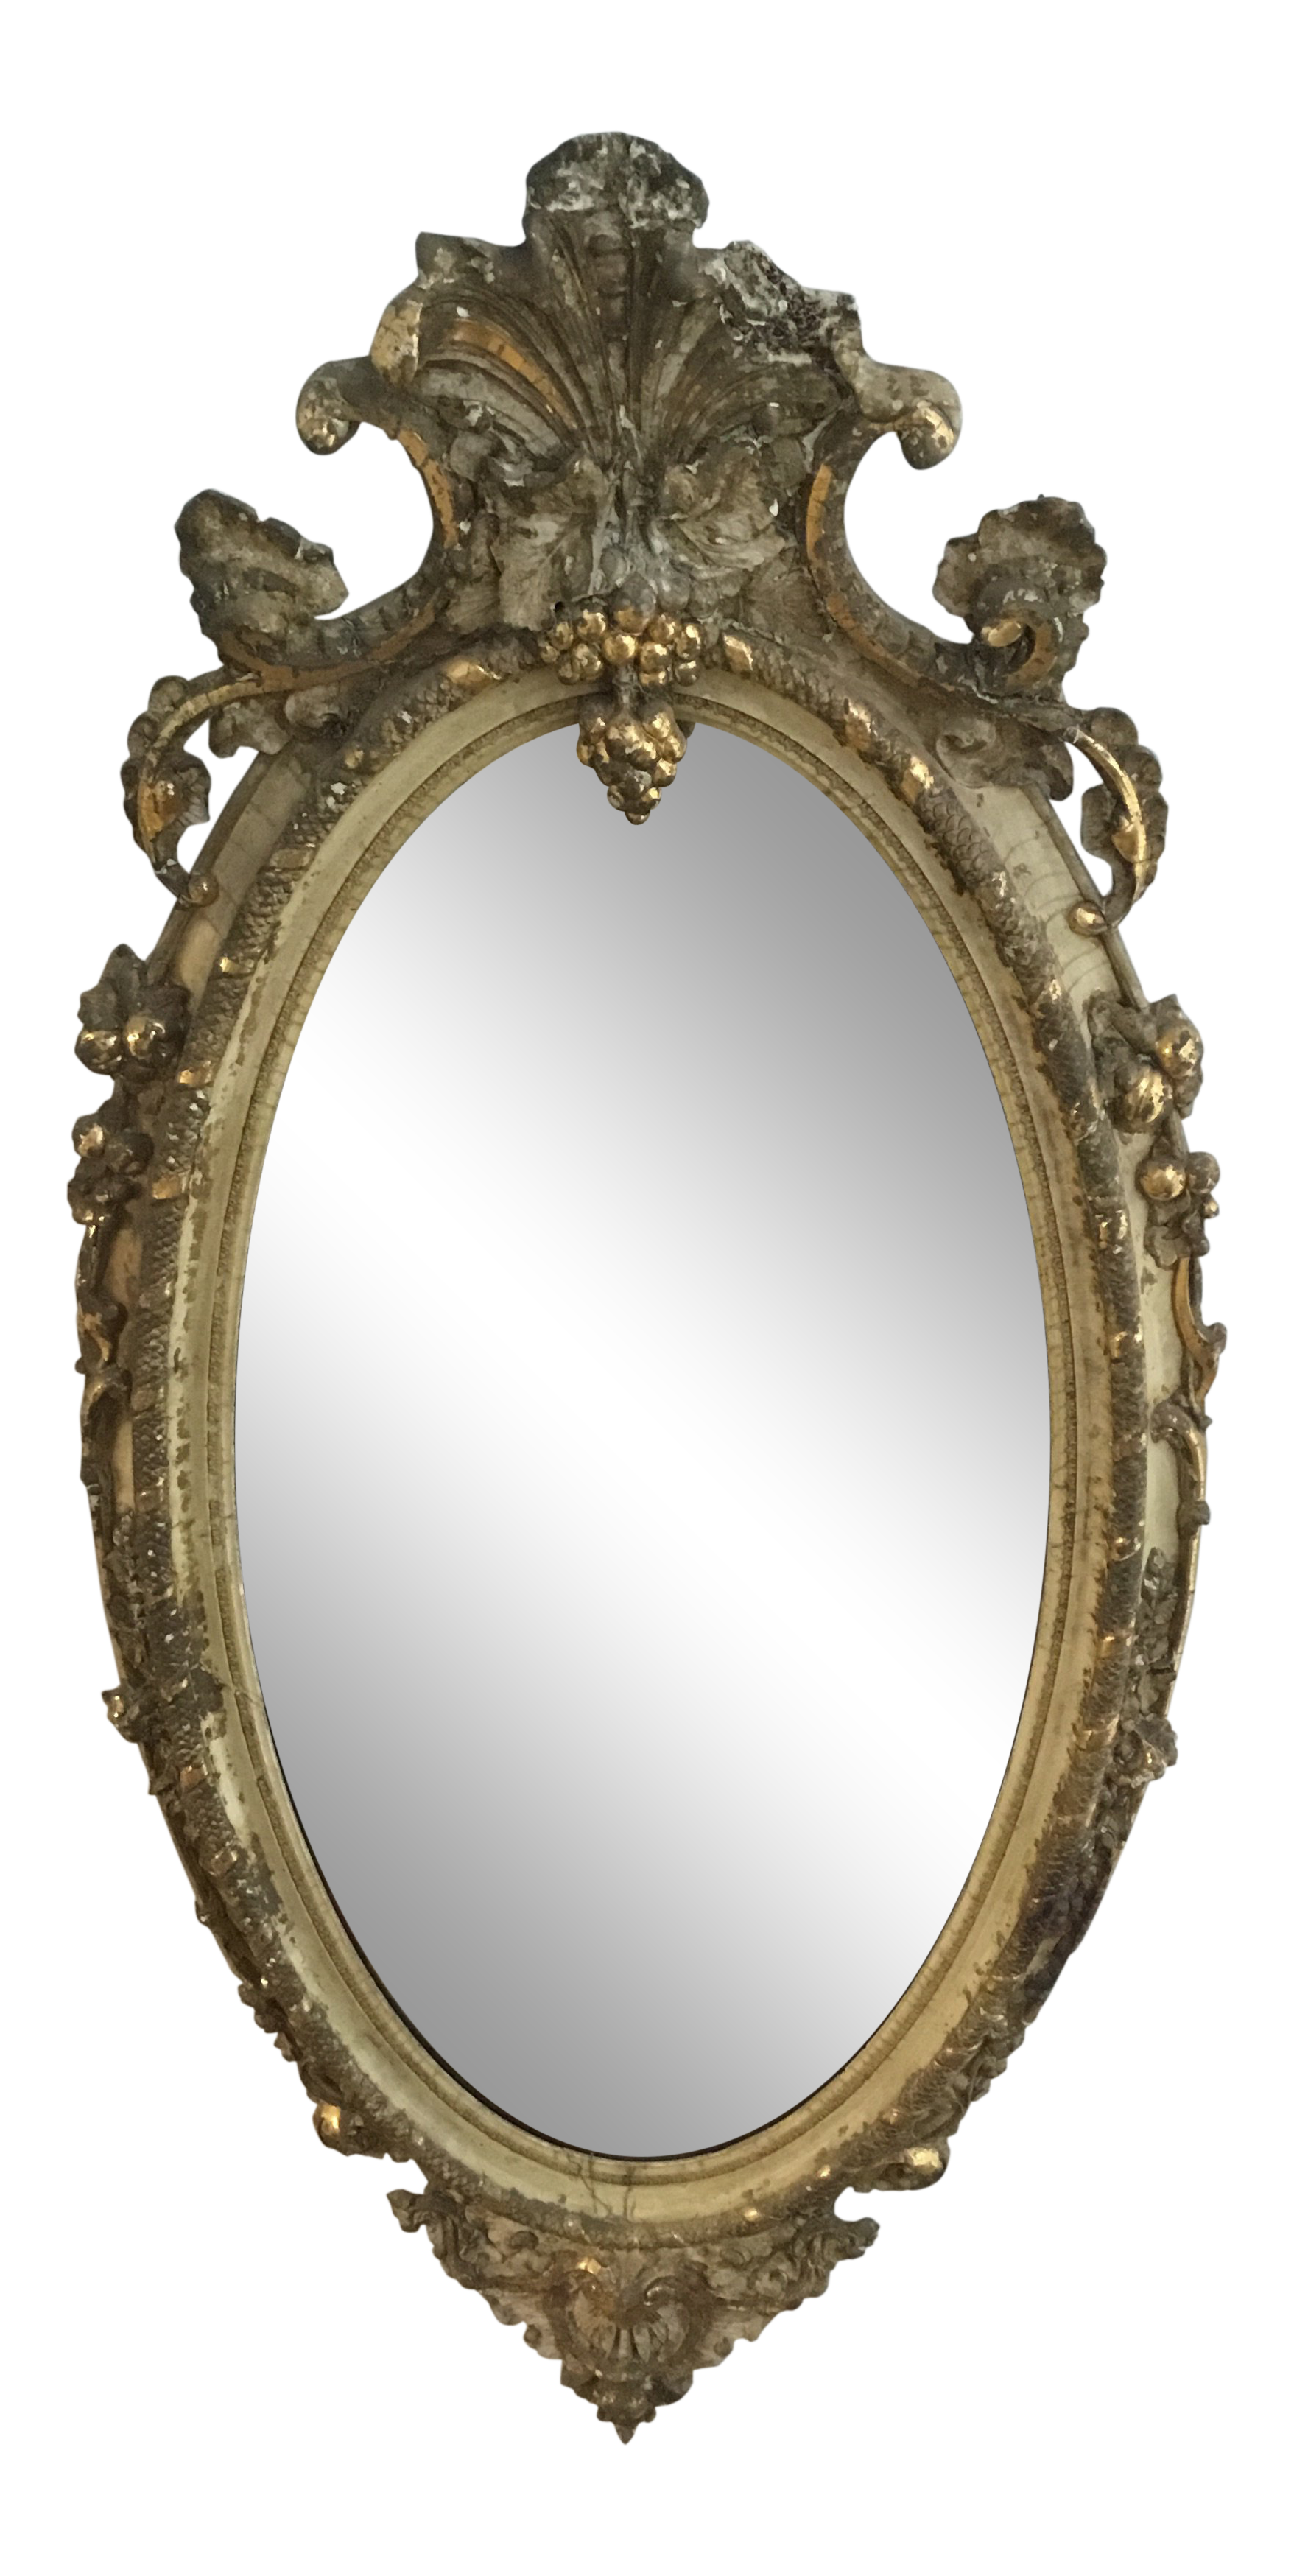 png freeuse library Distressed oval . Mirror transparent victorian.